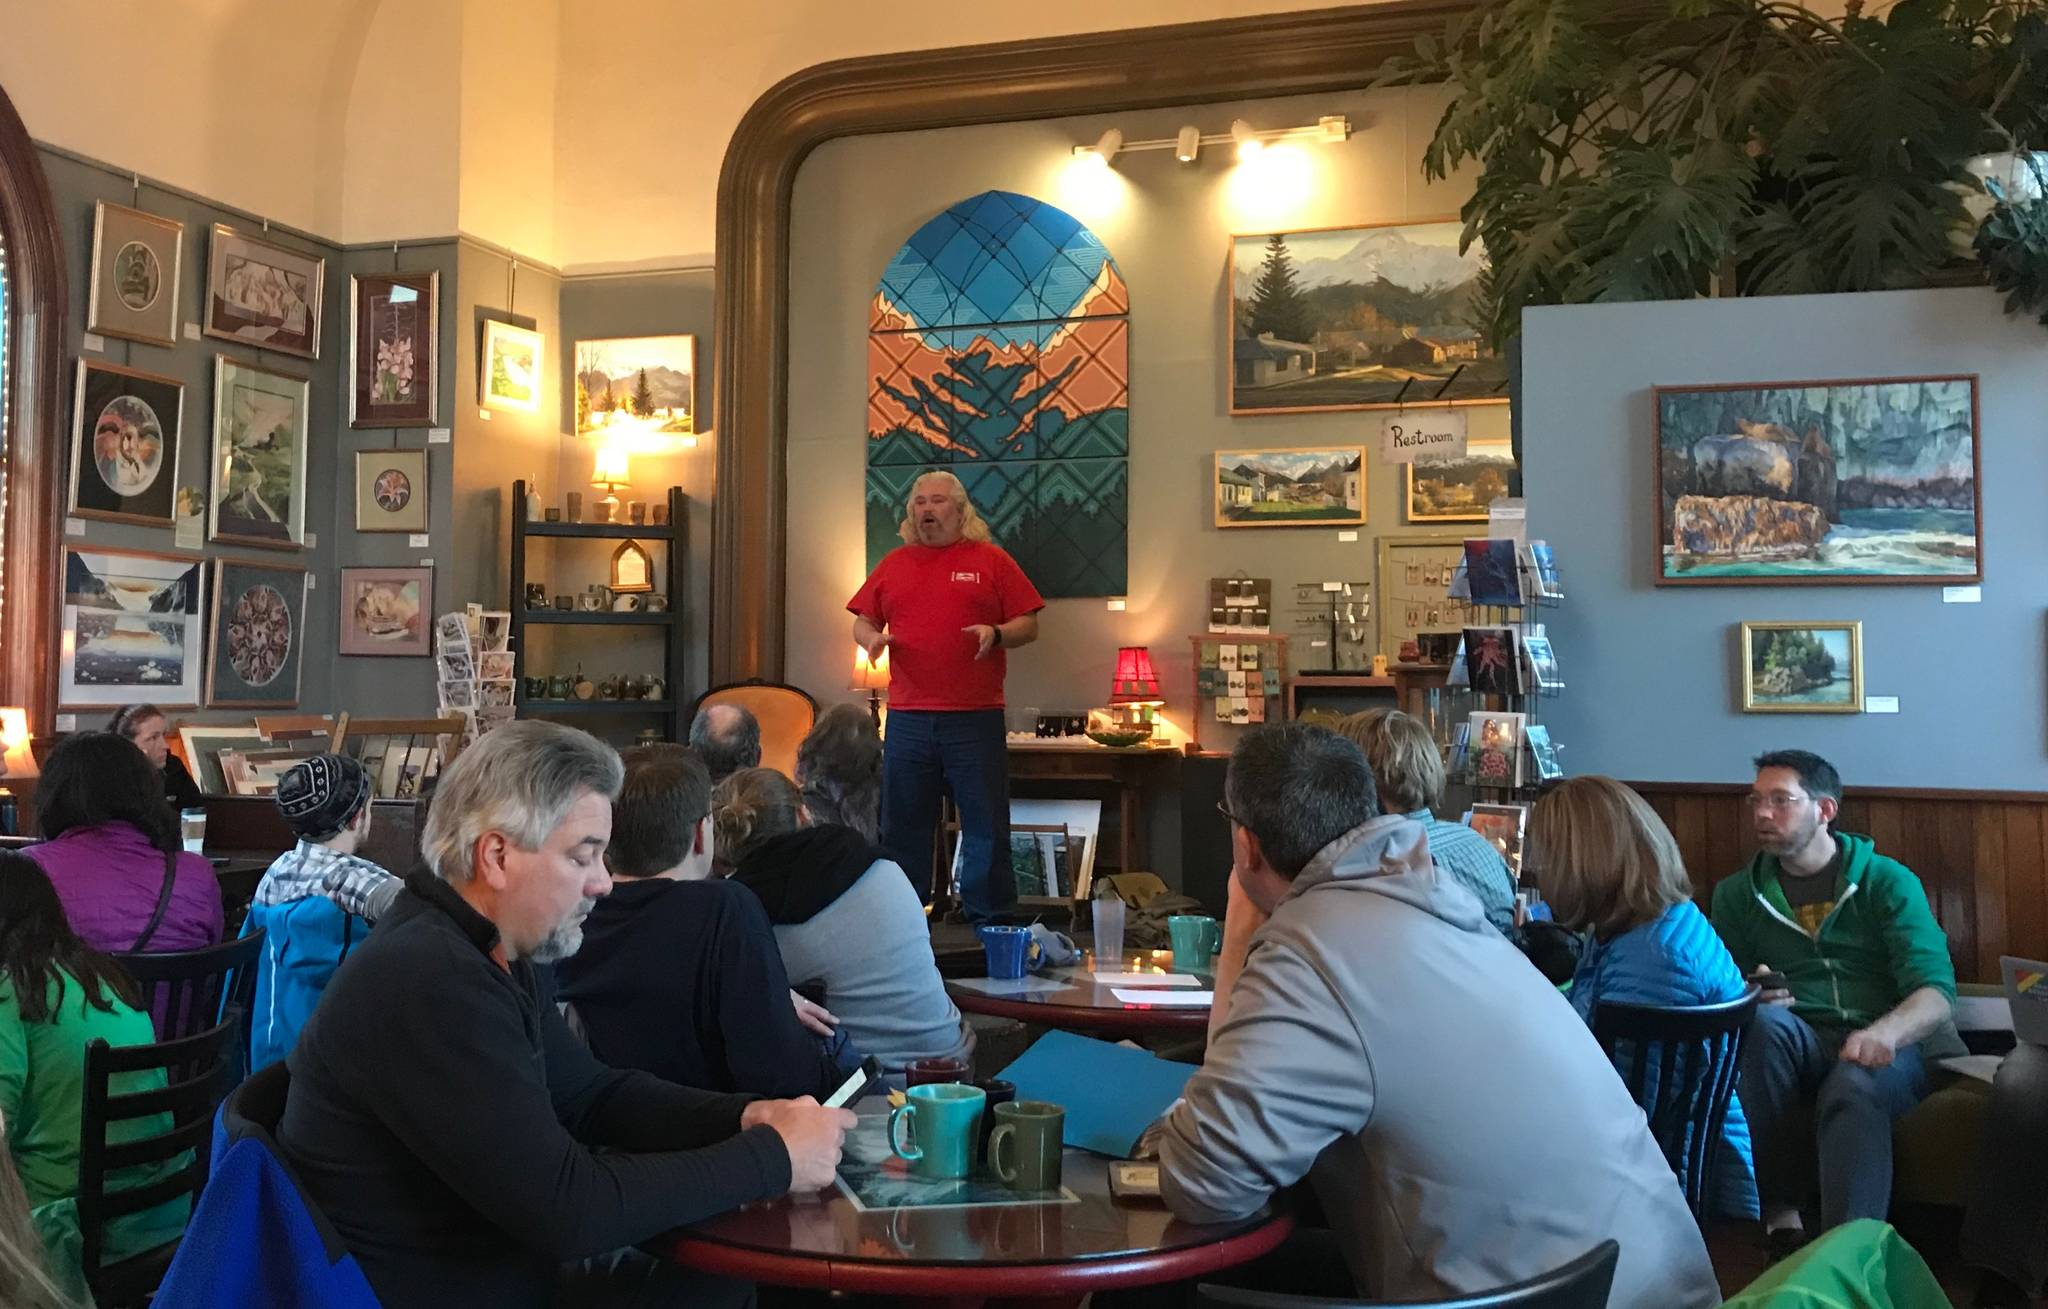 KPEA President David Brighton speaks to a group of educators, community members and district employees at Resurrect Art Coffee House on Friday, in Seward. (Photo by Kat Sorensen/Peninsula Clarion)